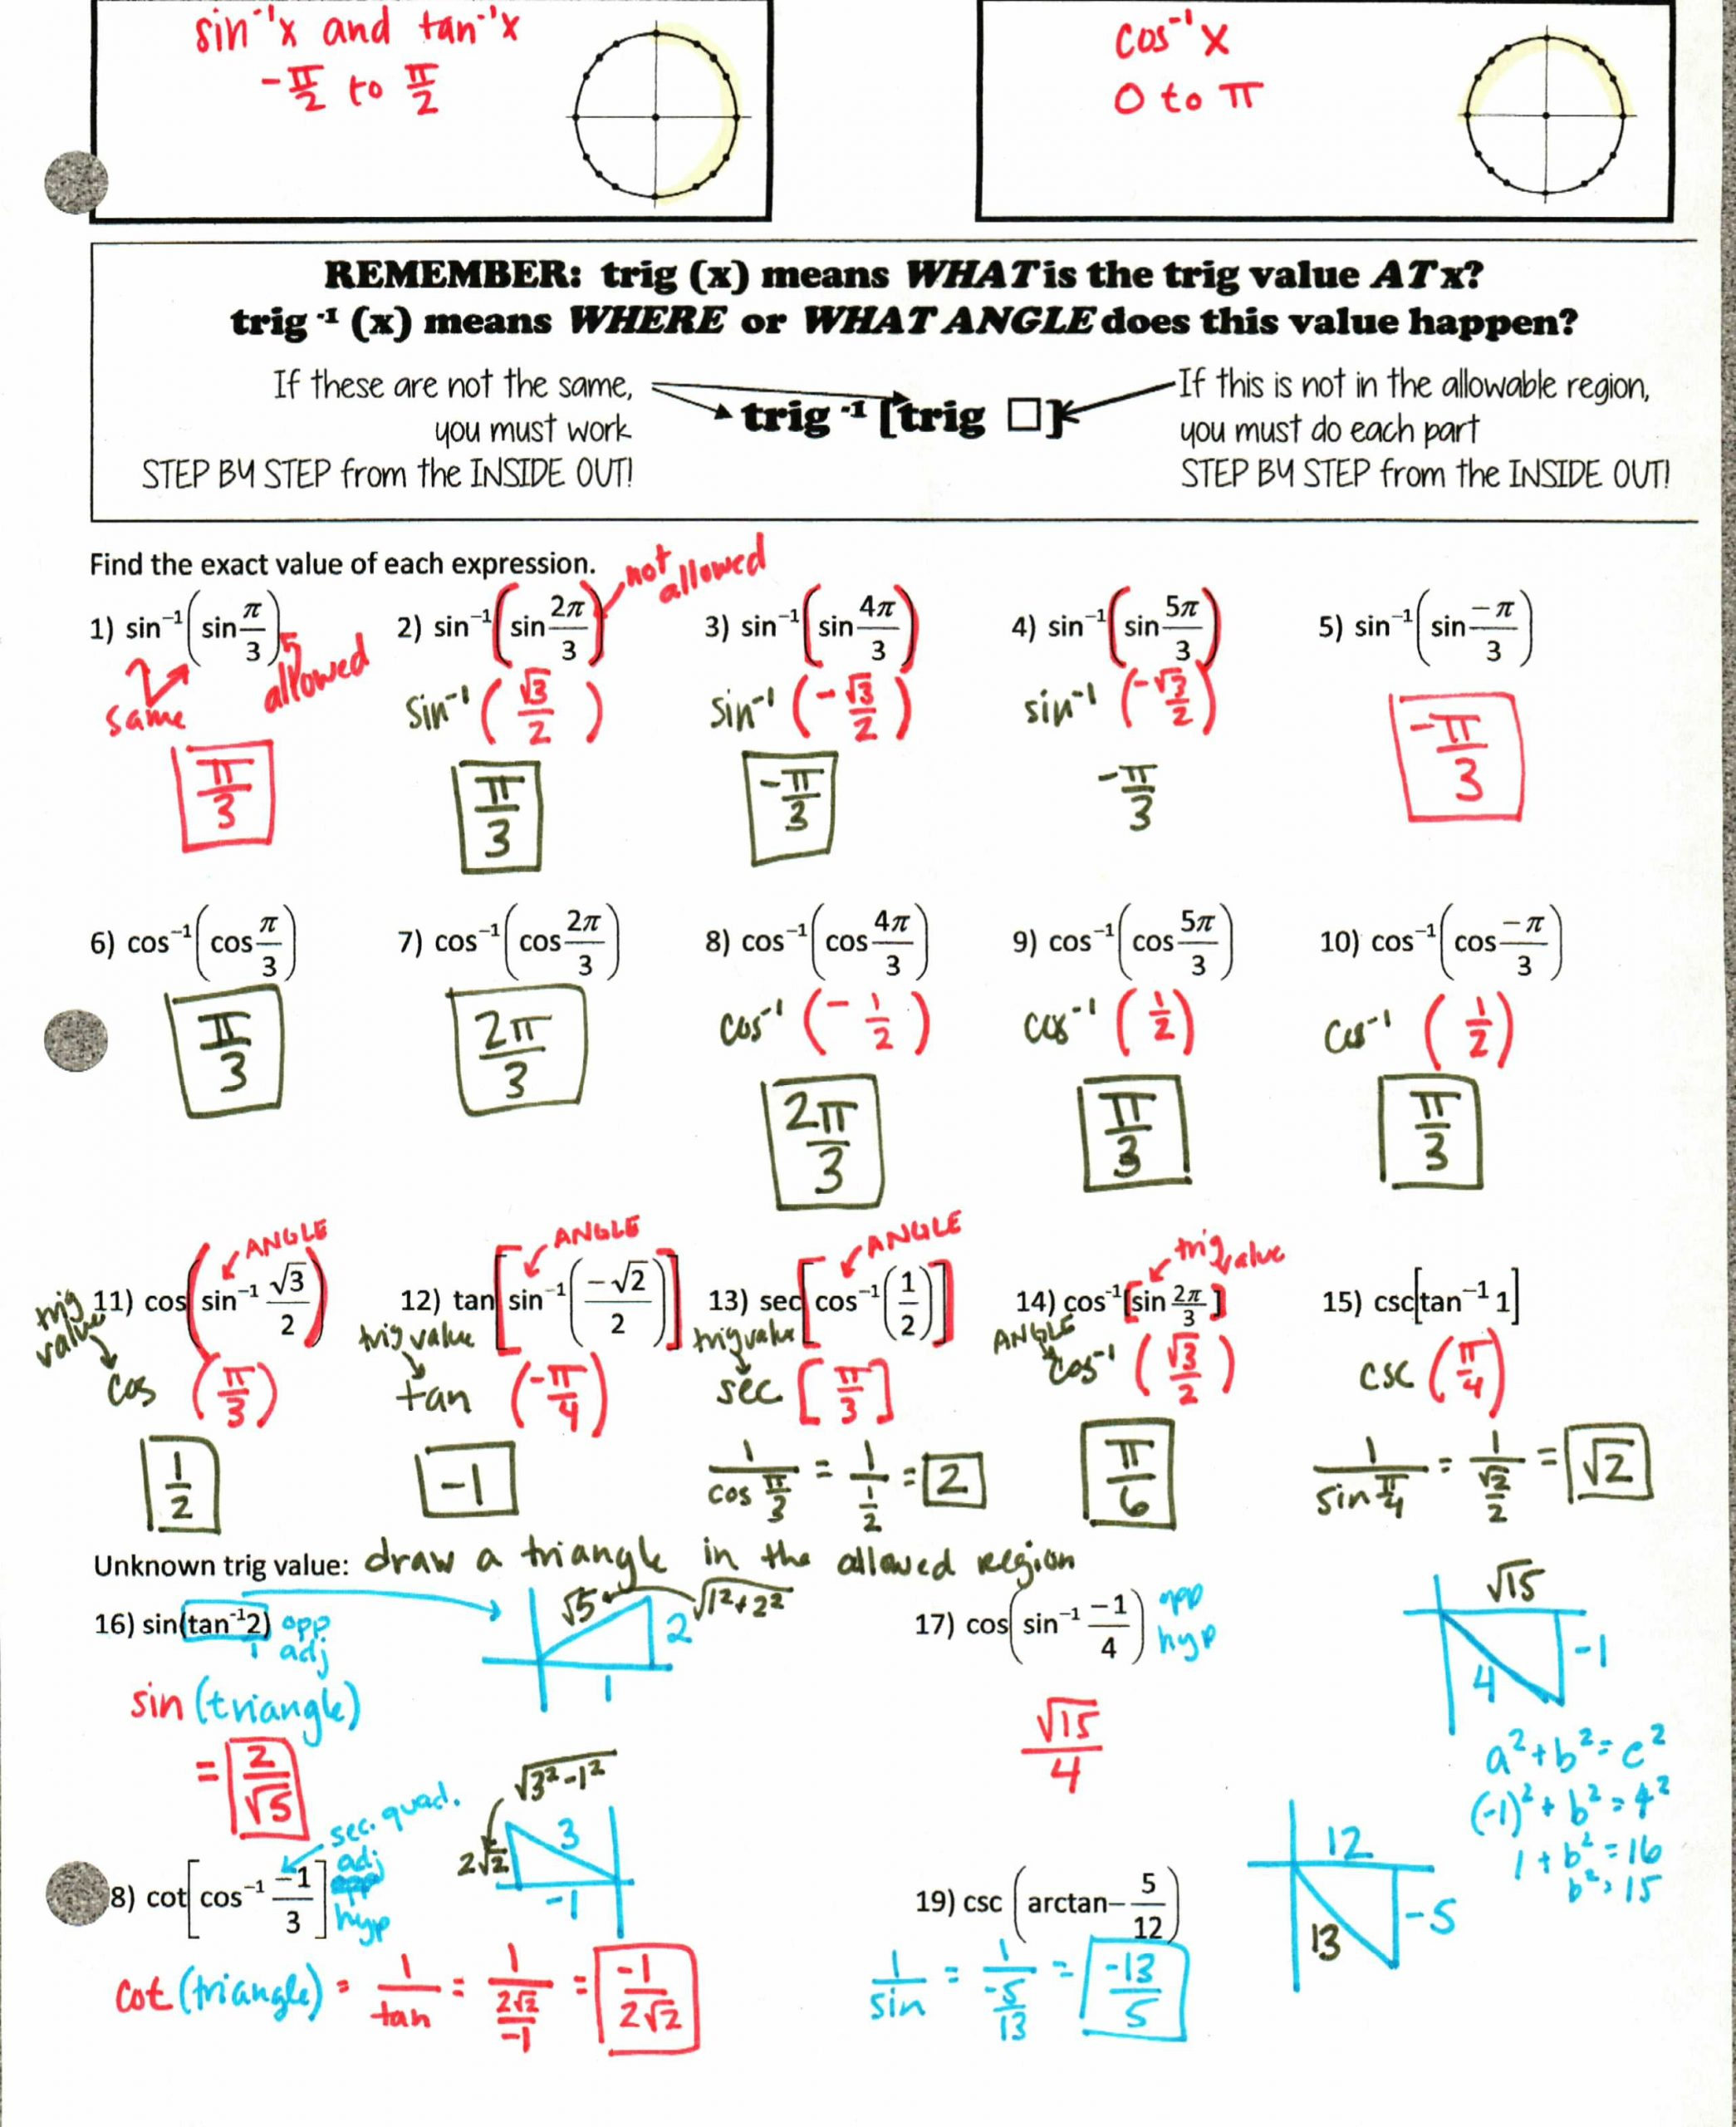 Graphing Trig Functions Practice Worksheet Trig – Insert Clever Math Pun Here